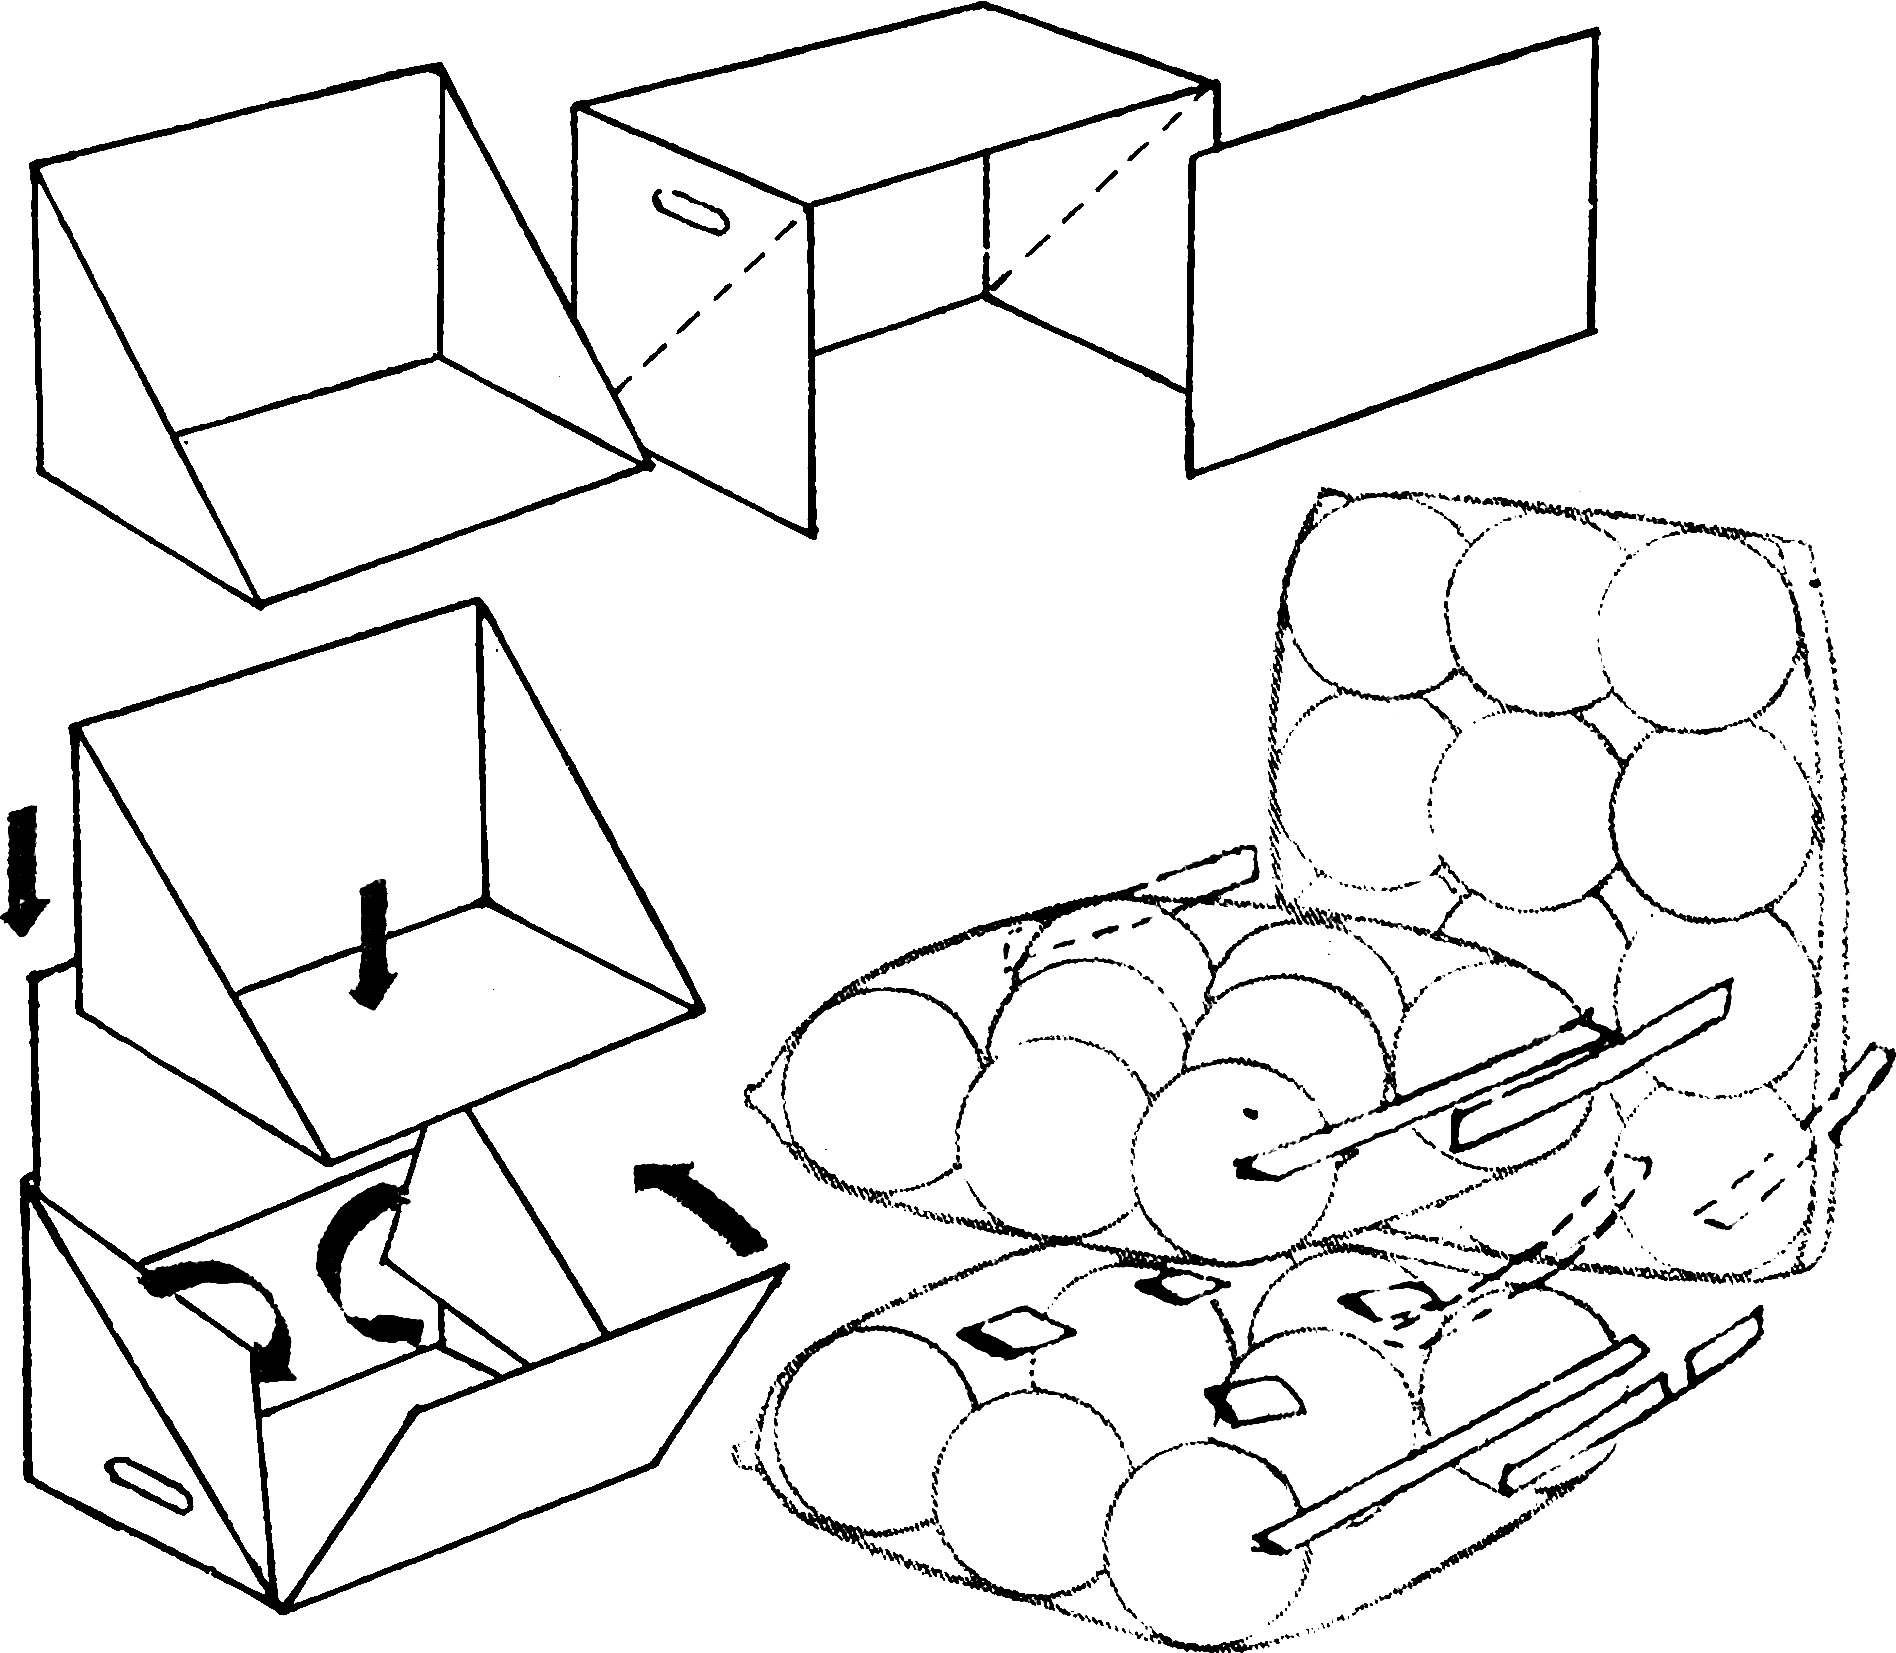 Balloons are Packed in plastic cases, United by adhesive tape and inserted into a cardboard frame of the container box.